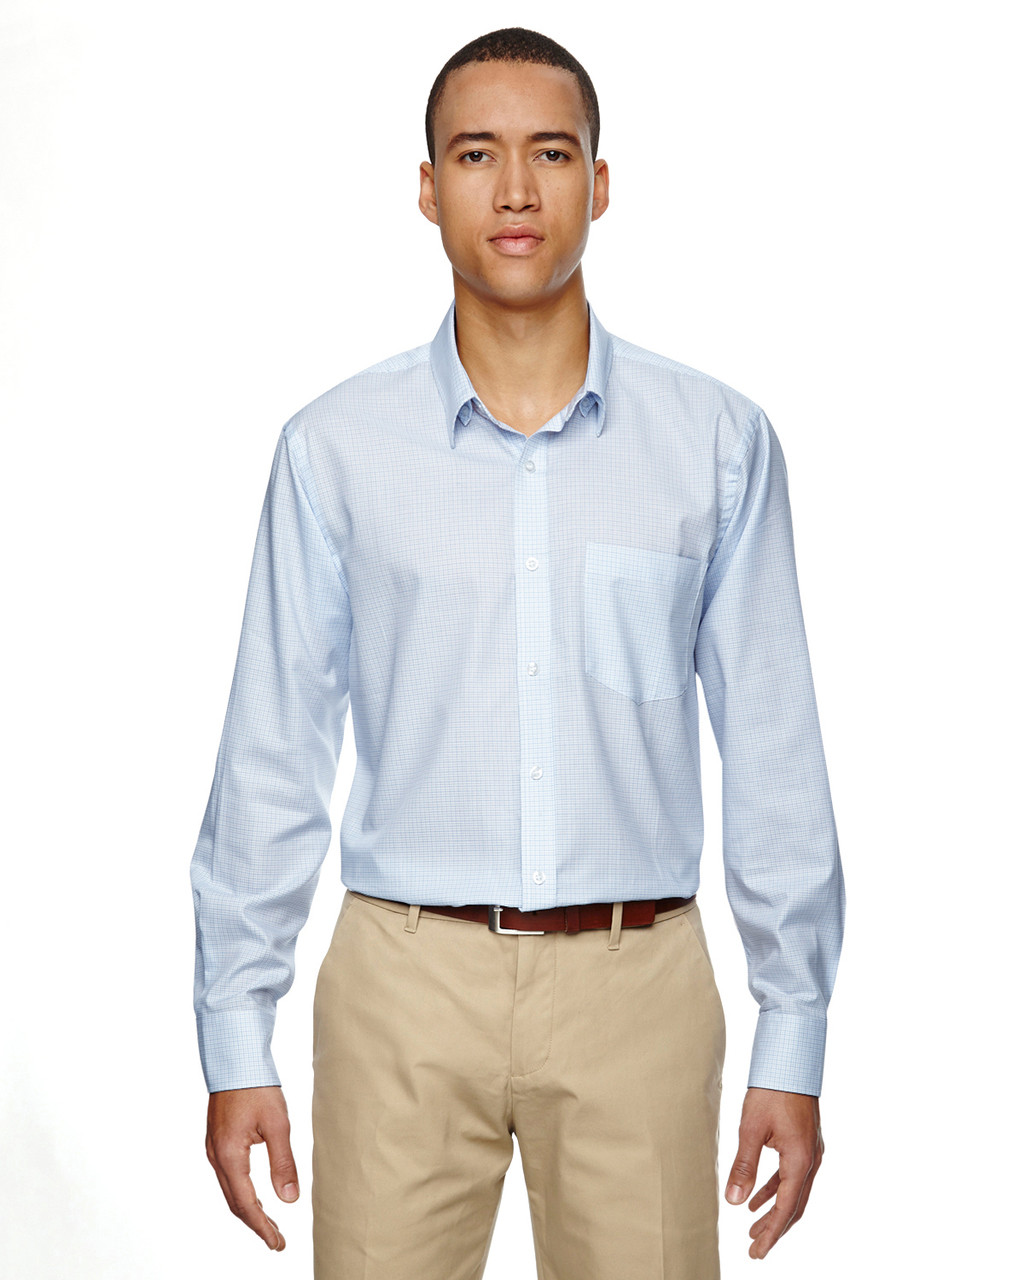 Light Blue 87043 North End Paramount Wrinkle-Resistant Cotton Blend Twill Checkered Shirt | Blankclothing.ca